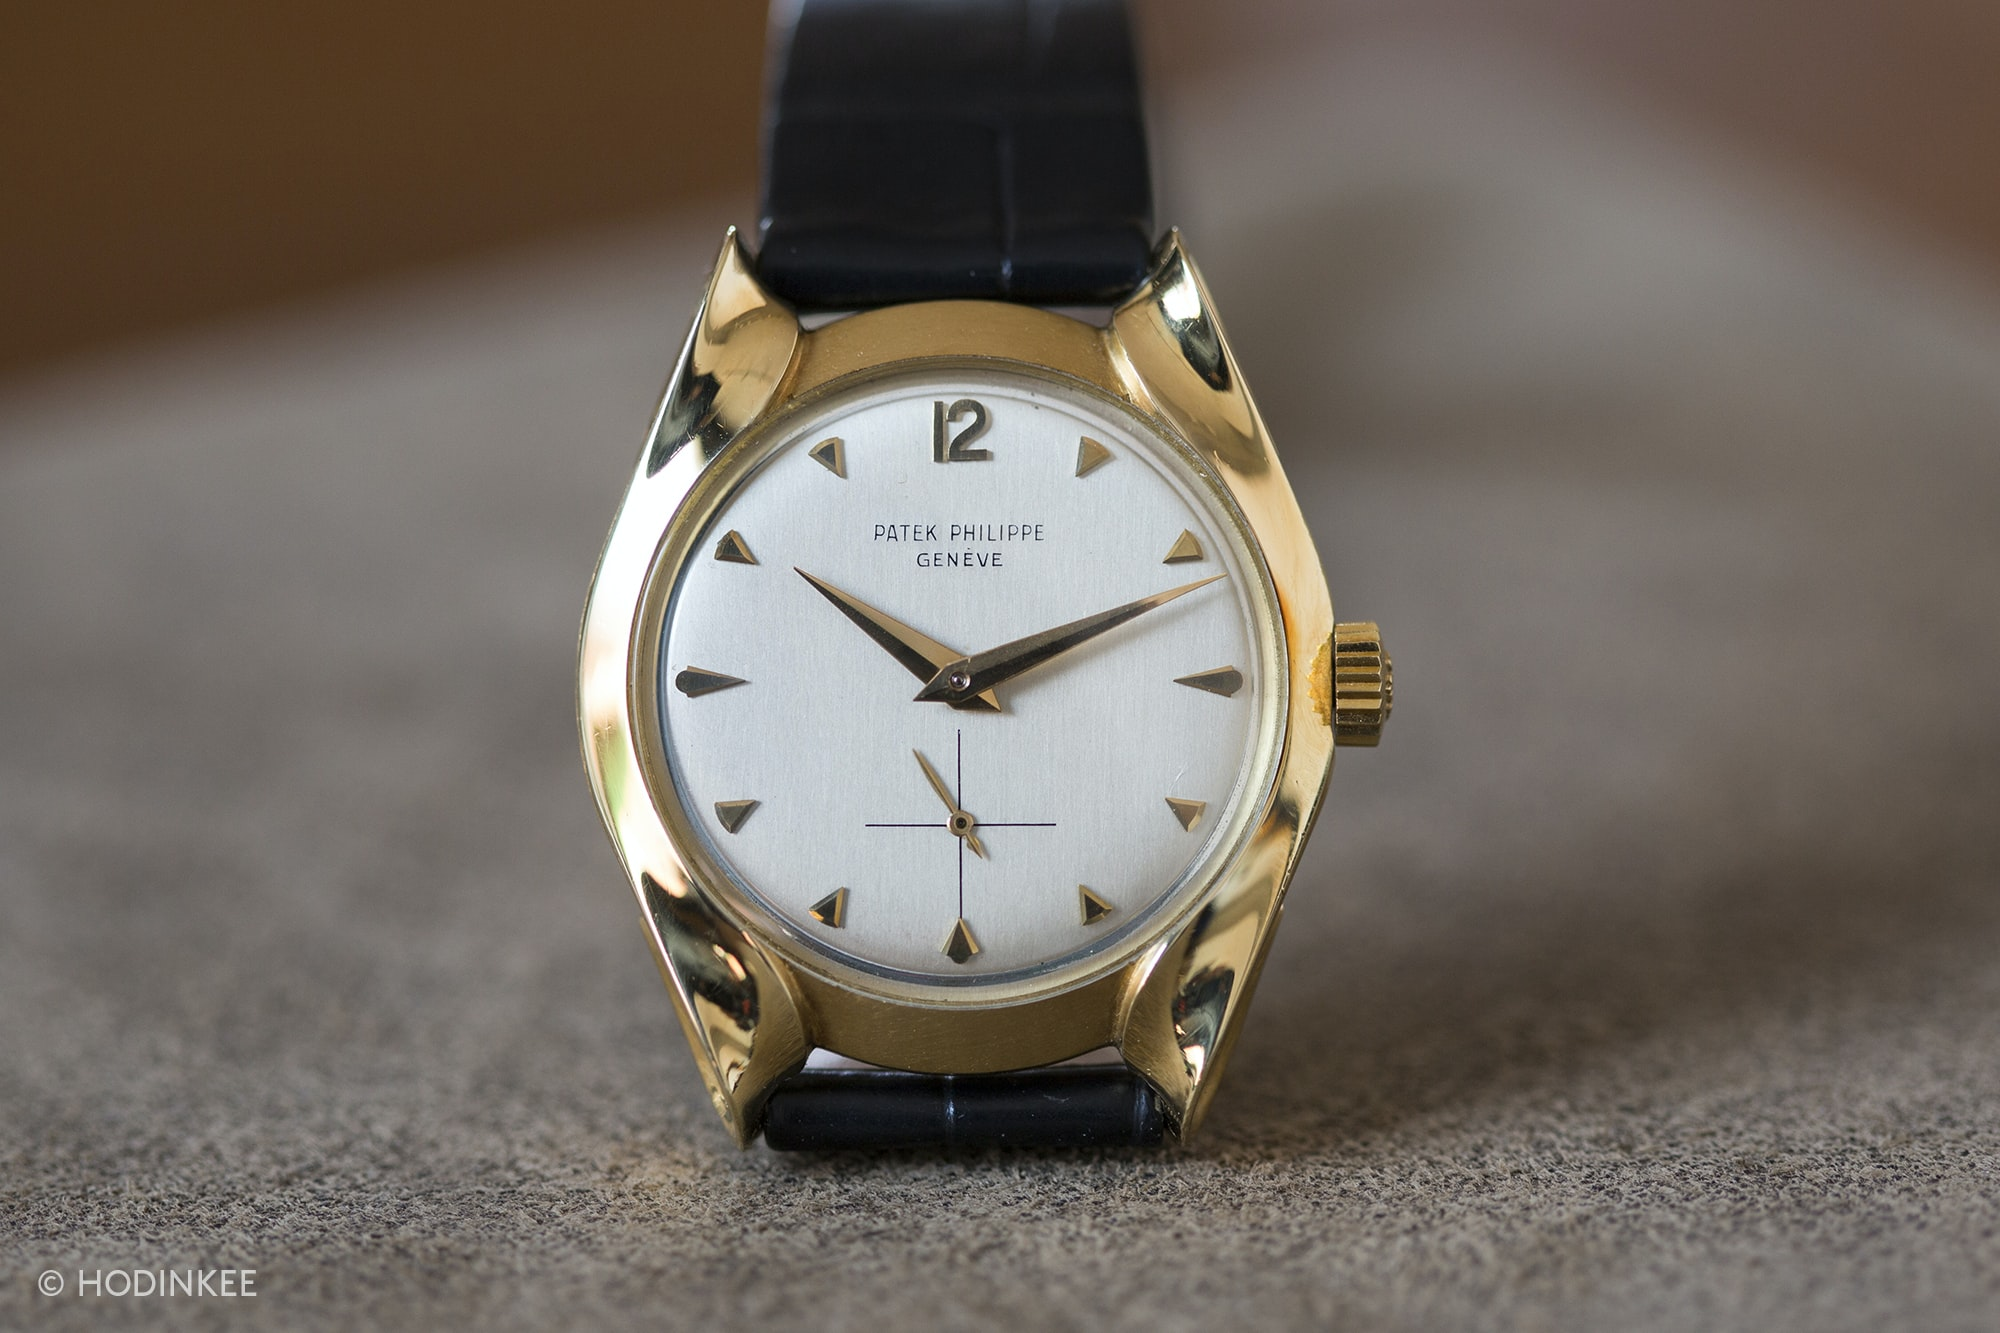 Gold Patek Philippe With Markowski Case Talking Watches: With Roni Madhvani Talking Watches: With Roni Madhvani 20010189 copy